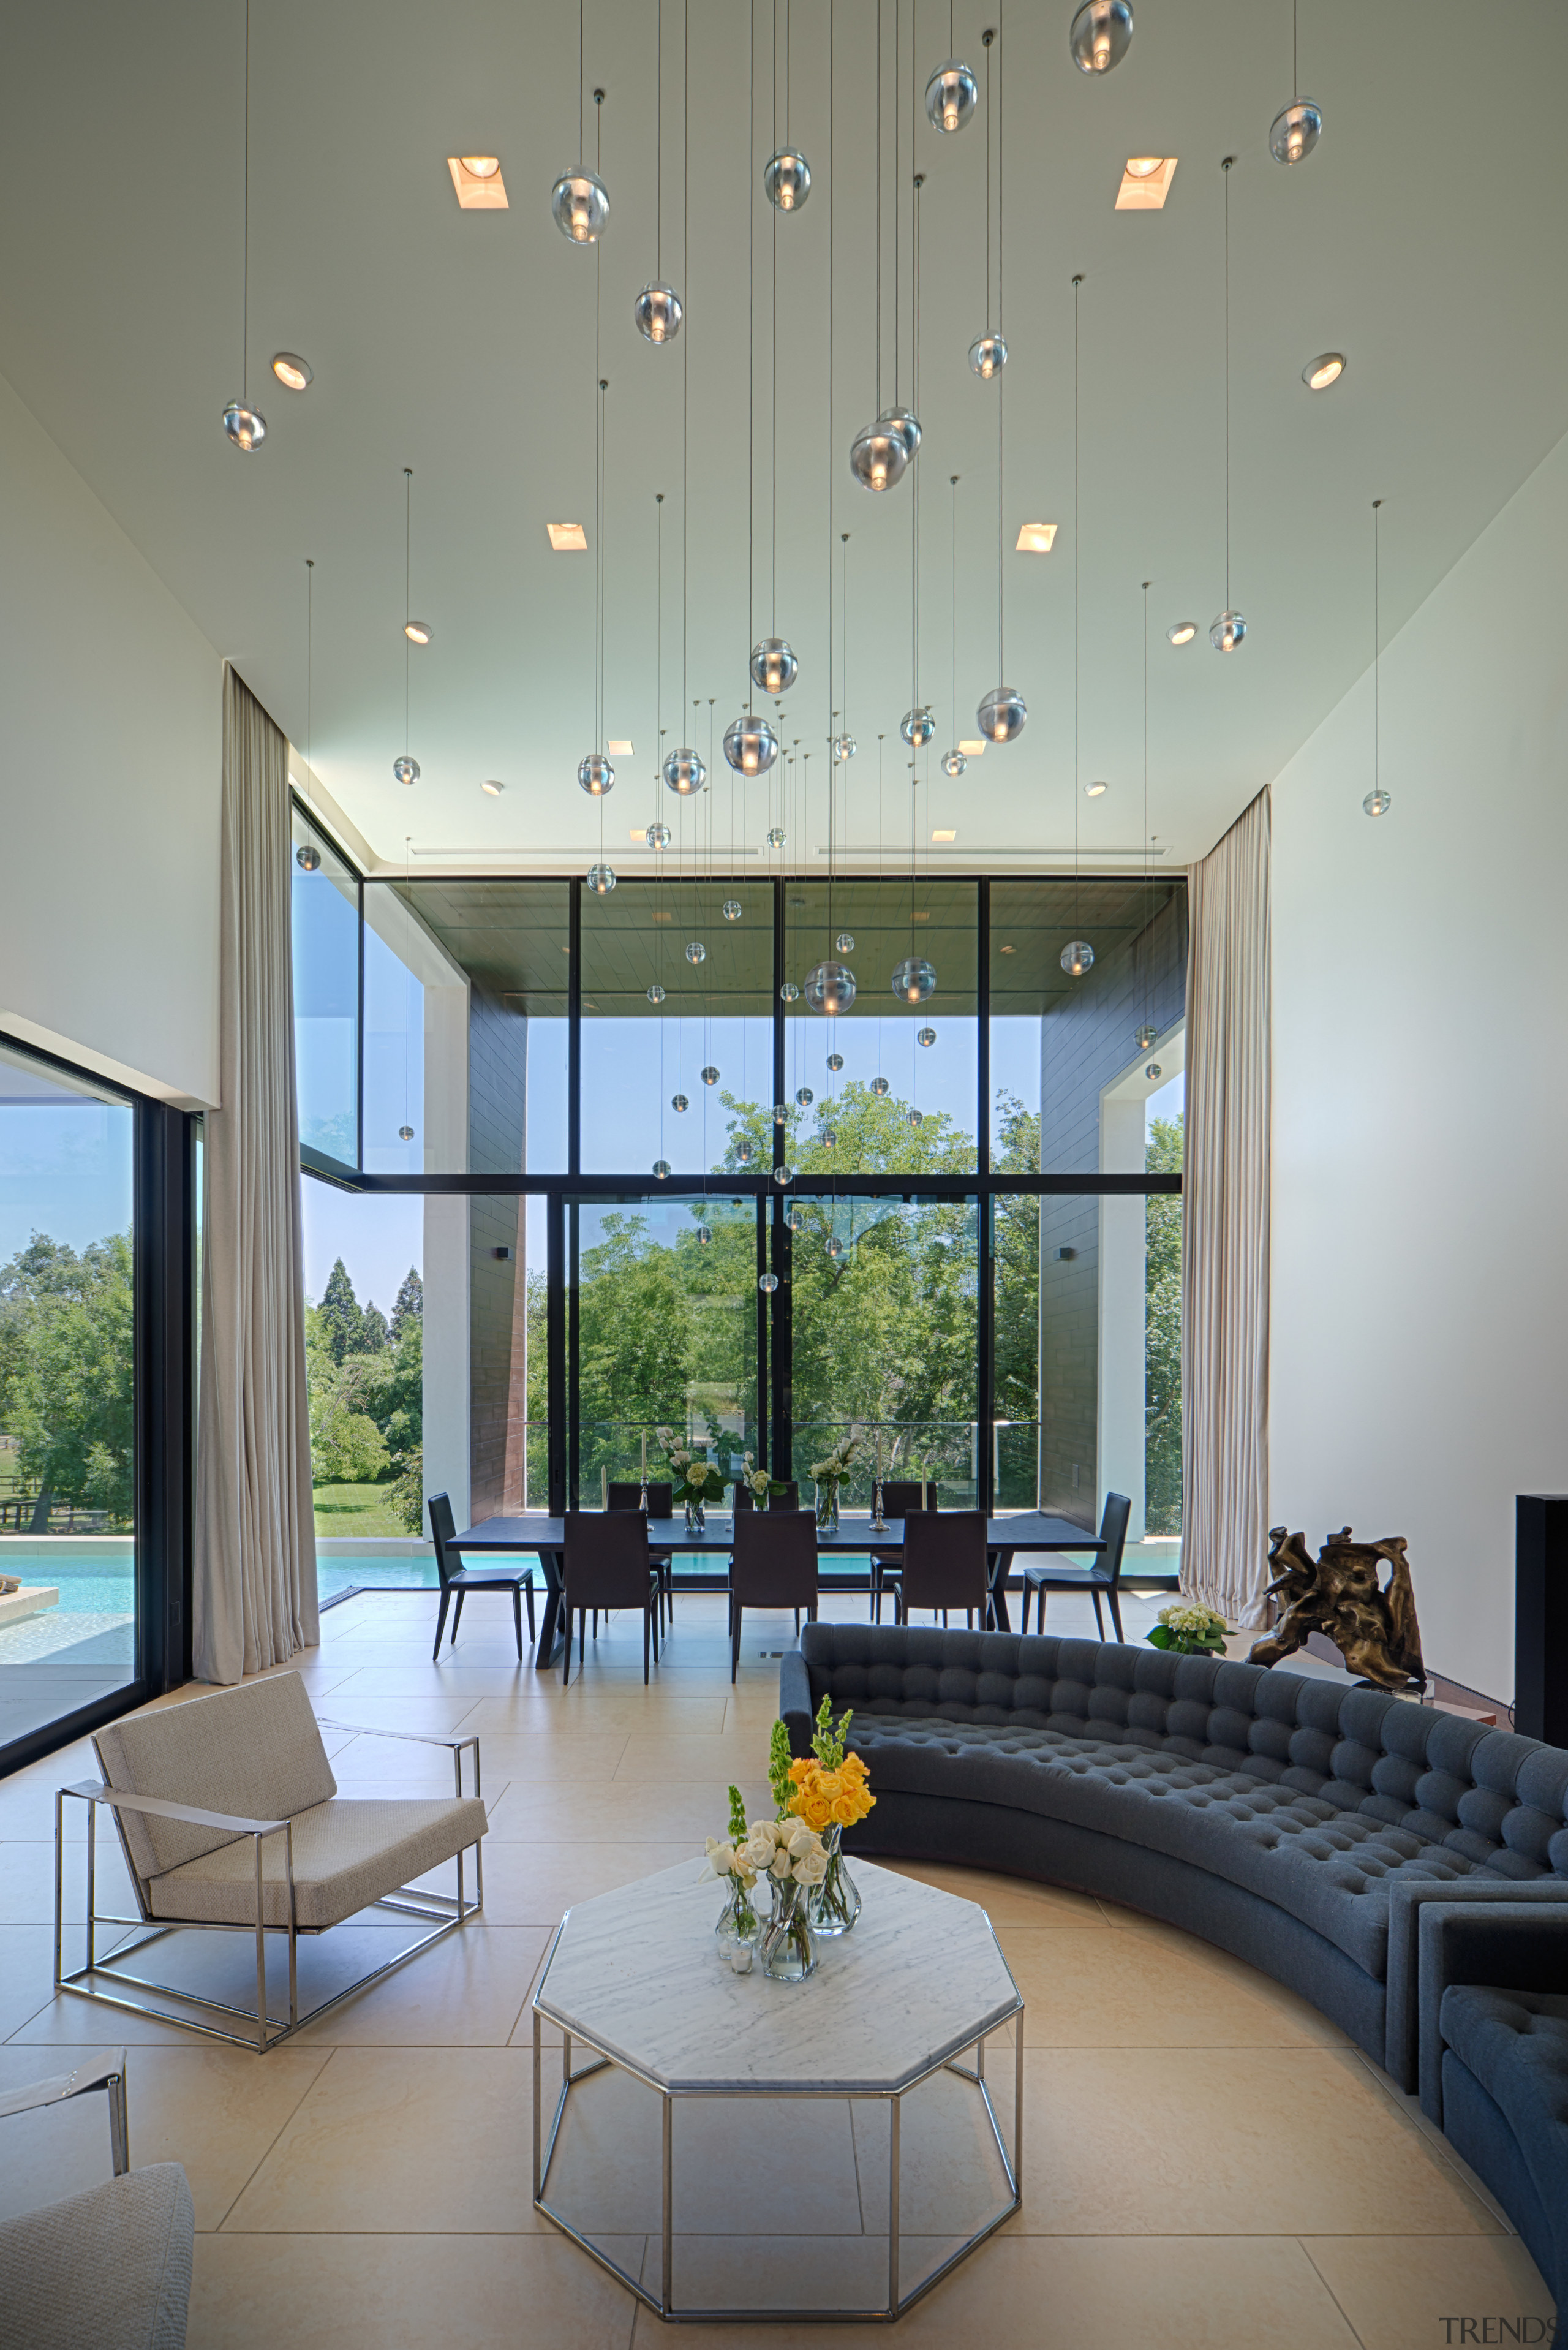 The entry leads directly into a large, two-story architecture, ceiling, daylighting, house, interior design, living room, lobby, window, gray